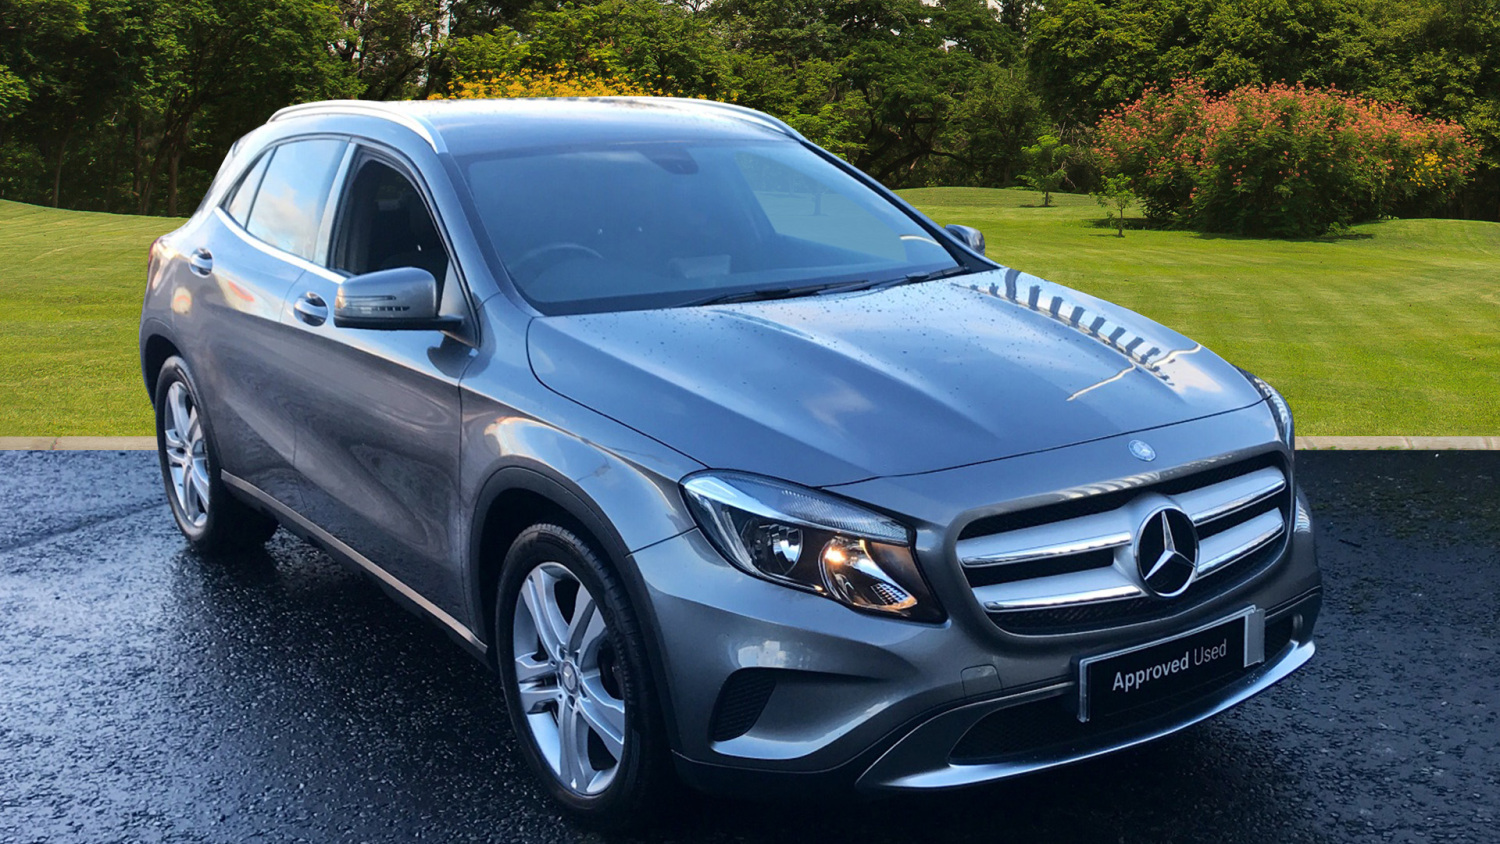 used mercedes benz gla gla 220 cdi 4matic se 5dr auto diesel hatchback for sale in scotland. Black Bedroom Furniture Sets. Home Design Ideas